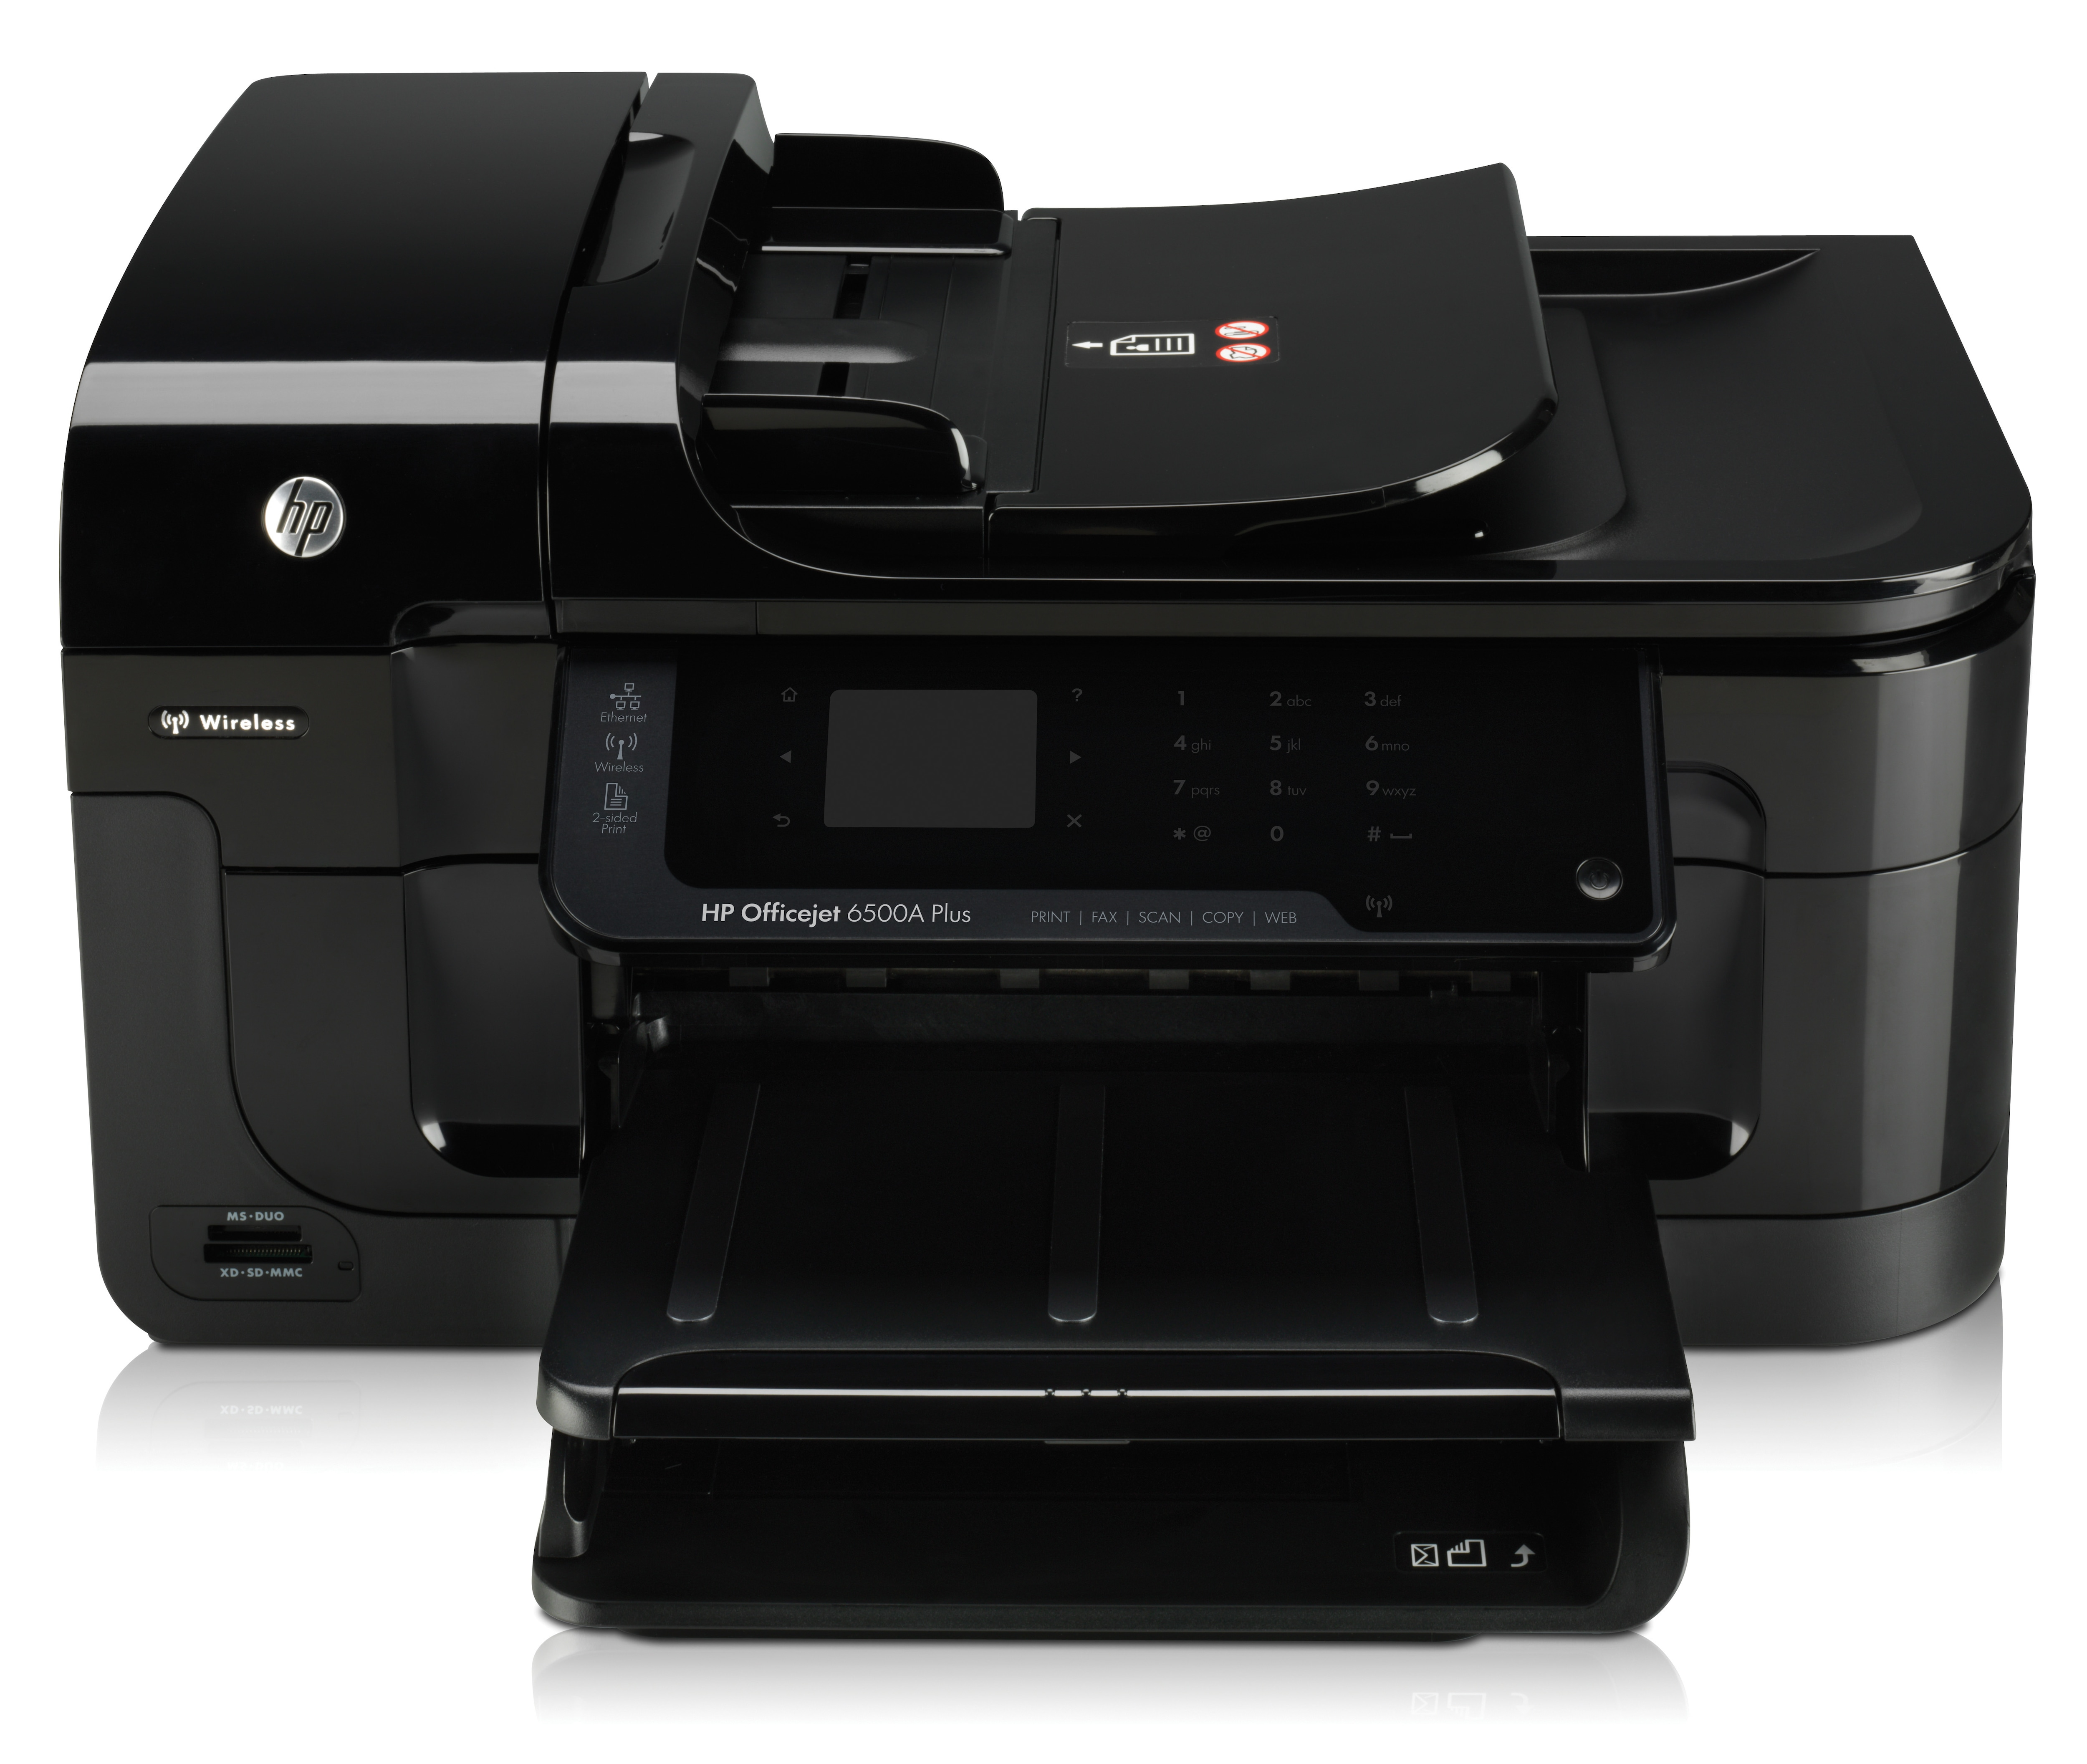 CN575A HP OfficeJet 6500A printer - Refurbished